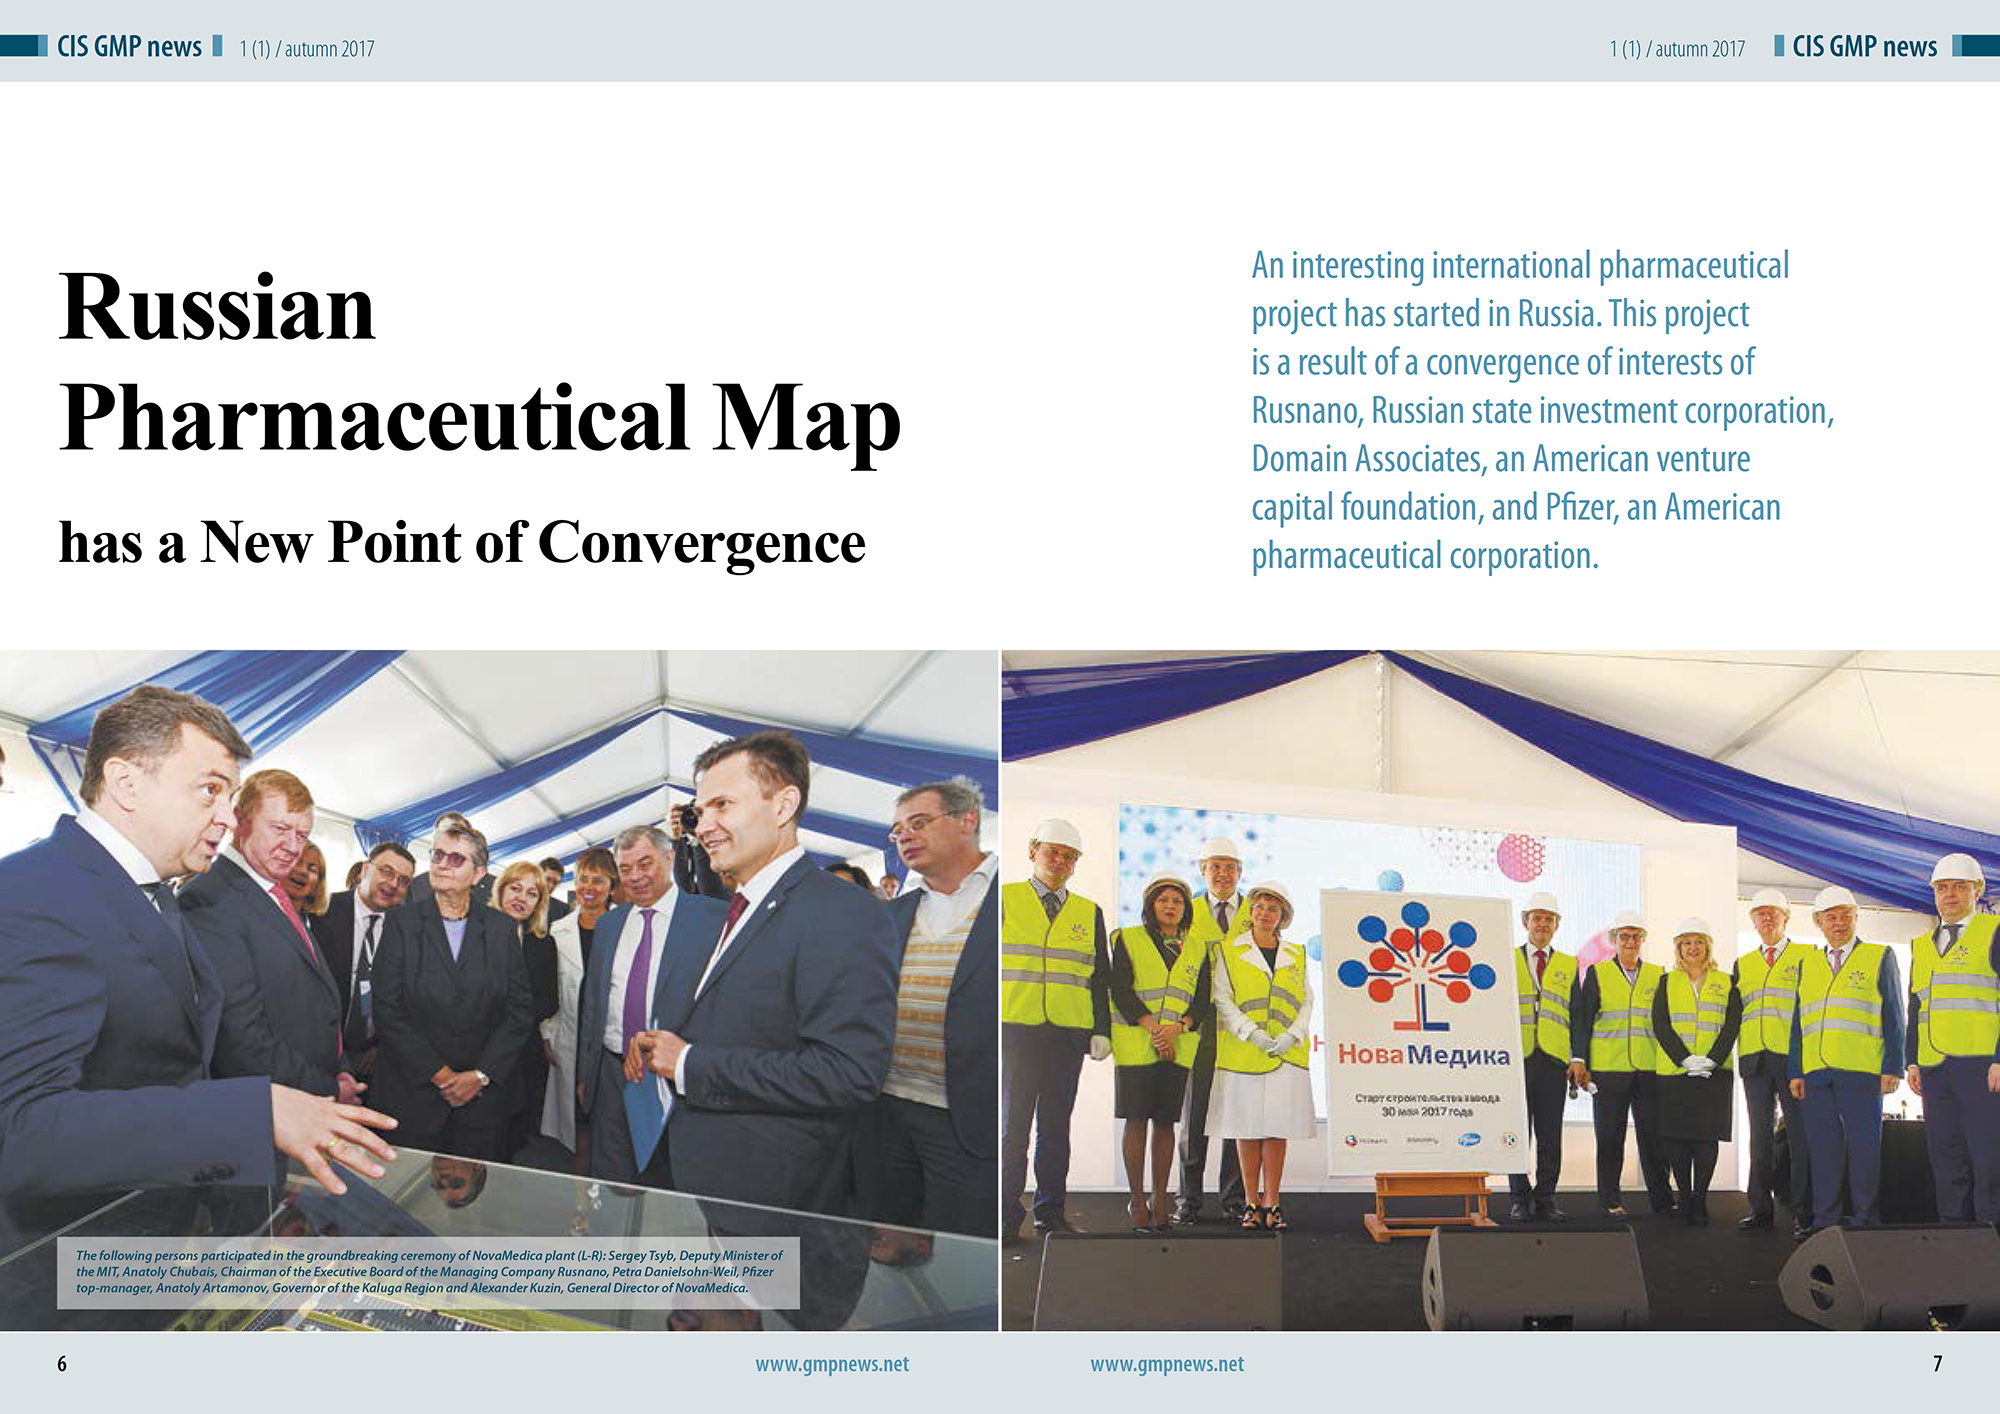 Russian pharmaceutical map has a new point of convergence